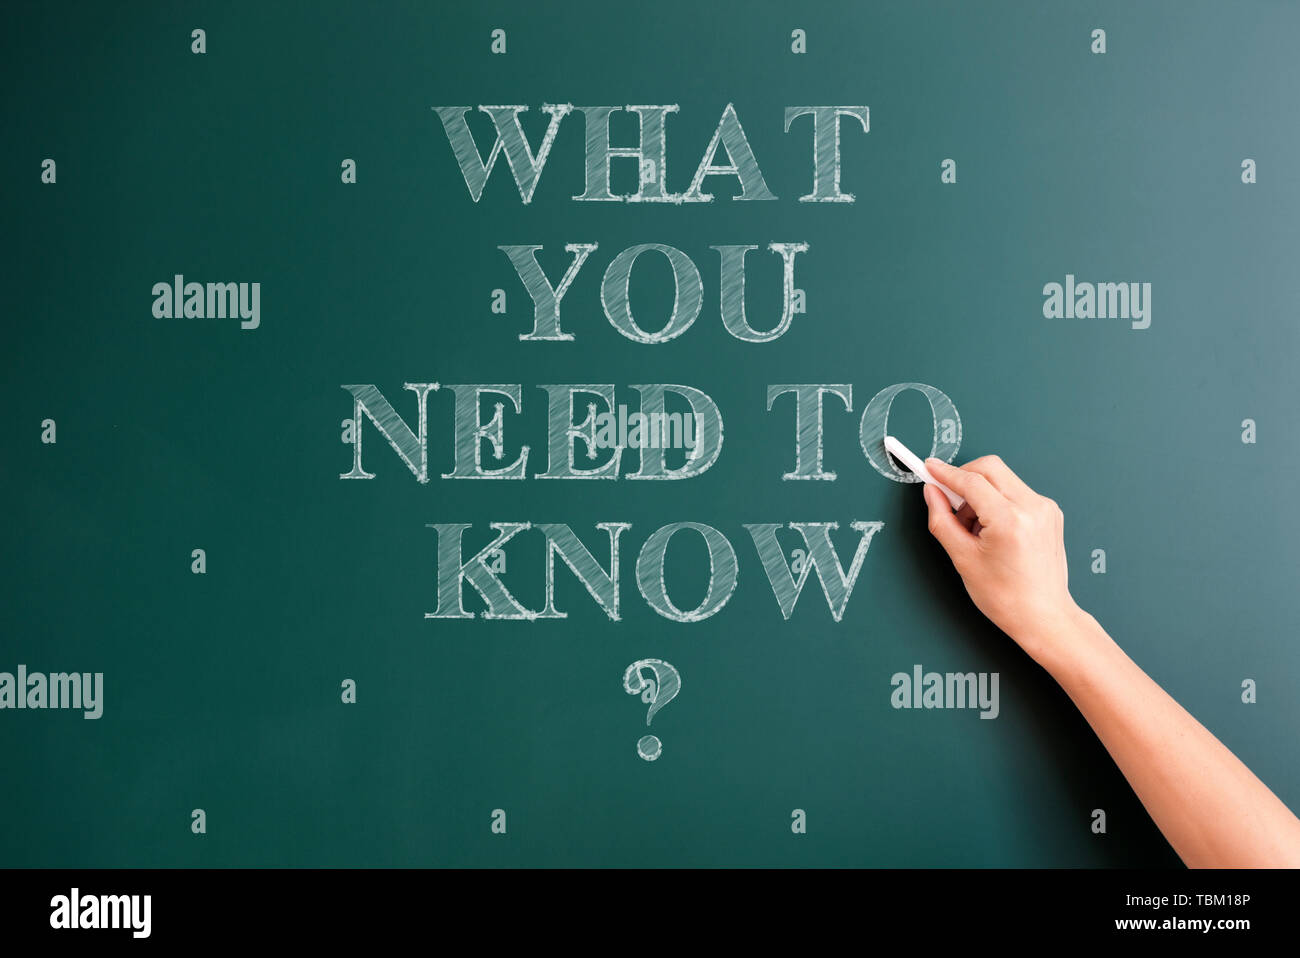 what you need to know written on blackboard - Stock Image